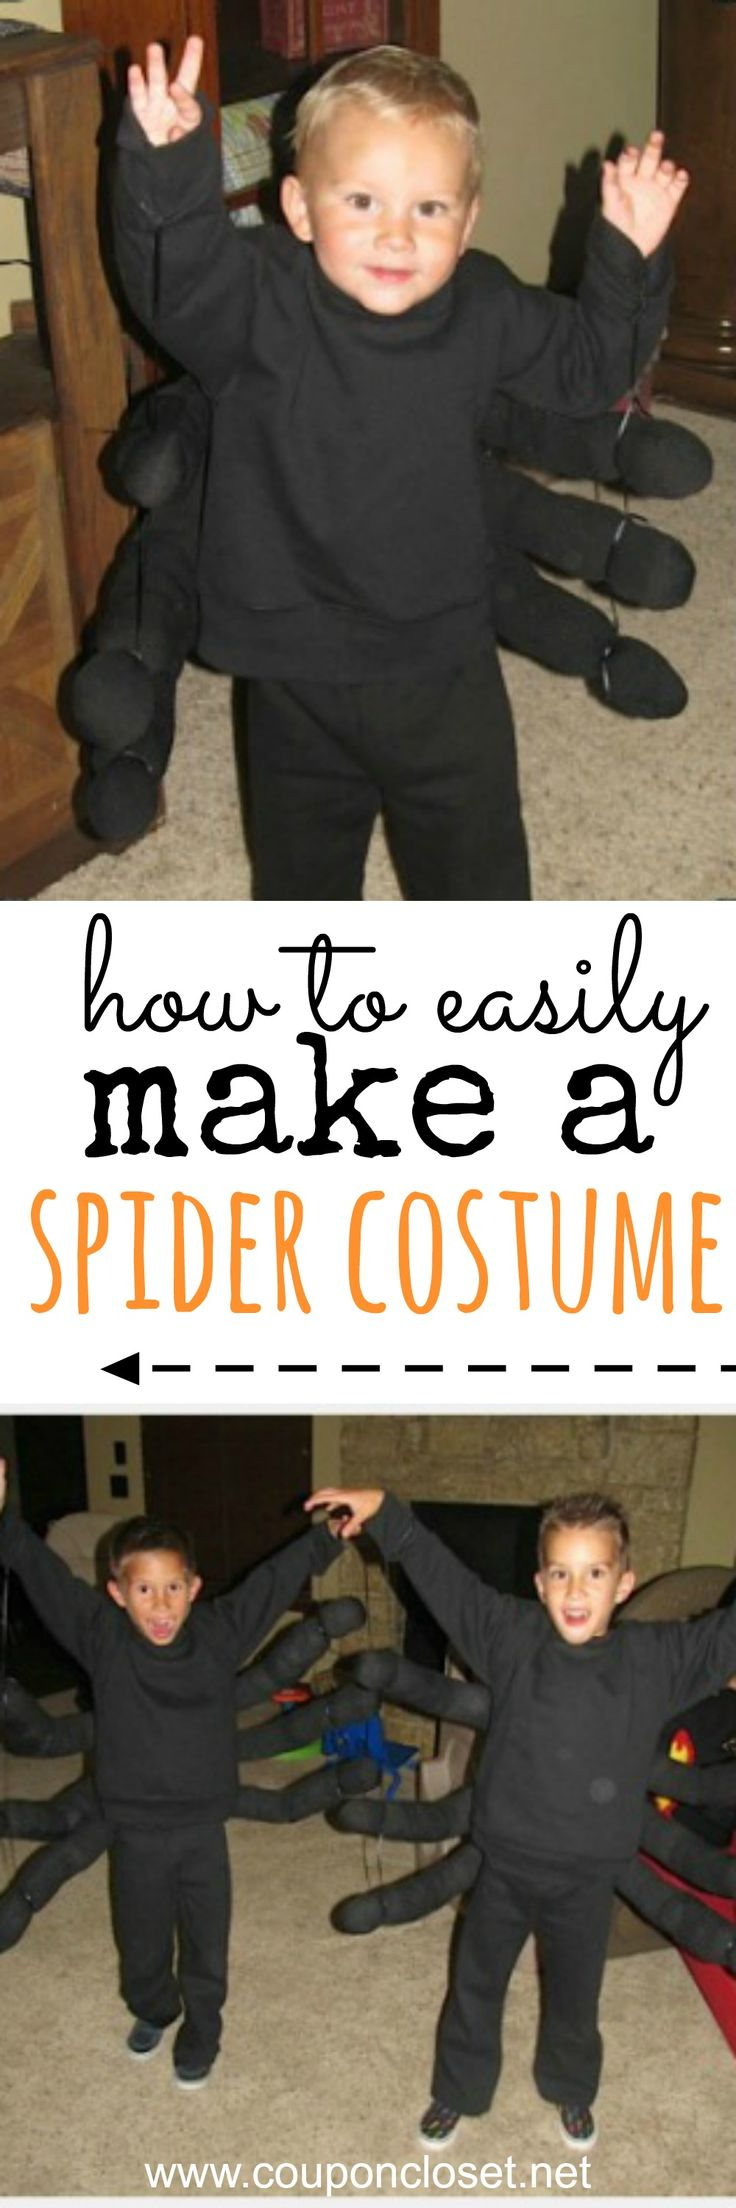 How to make a spider costume quick and easy halloween for Quick halloween costumes for toddlers